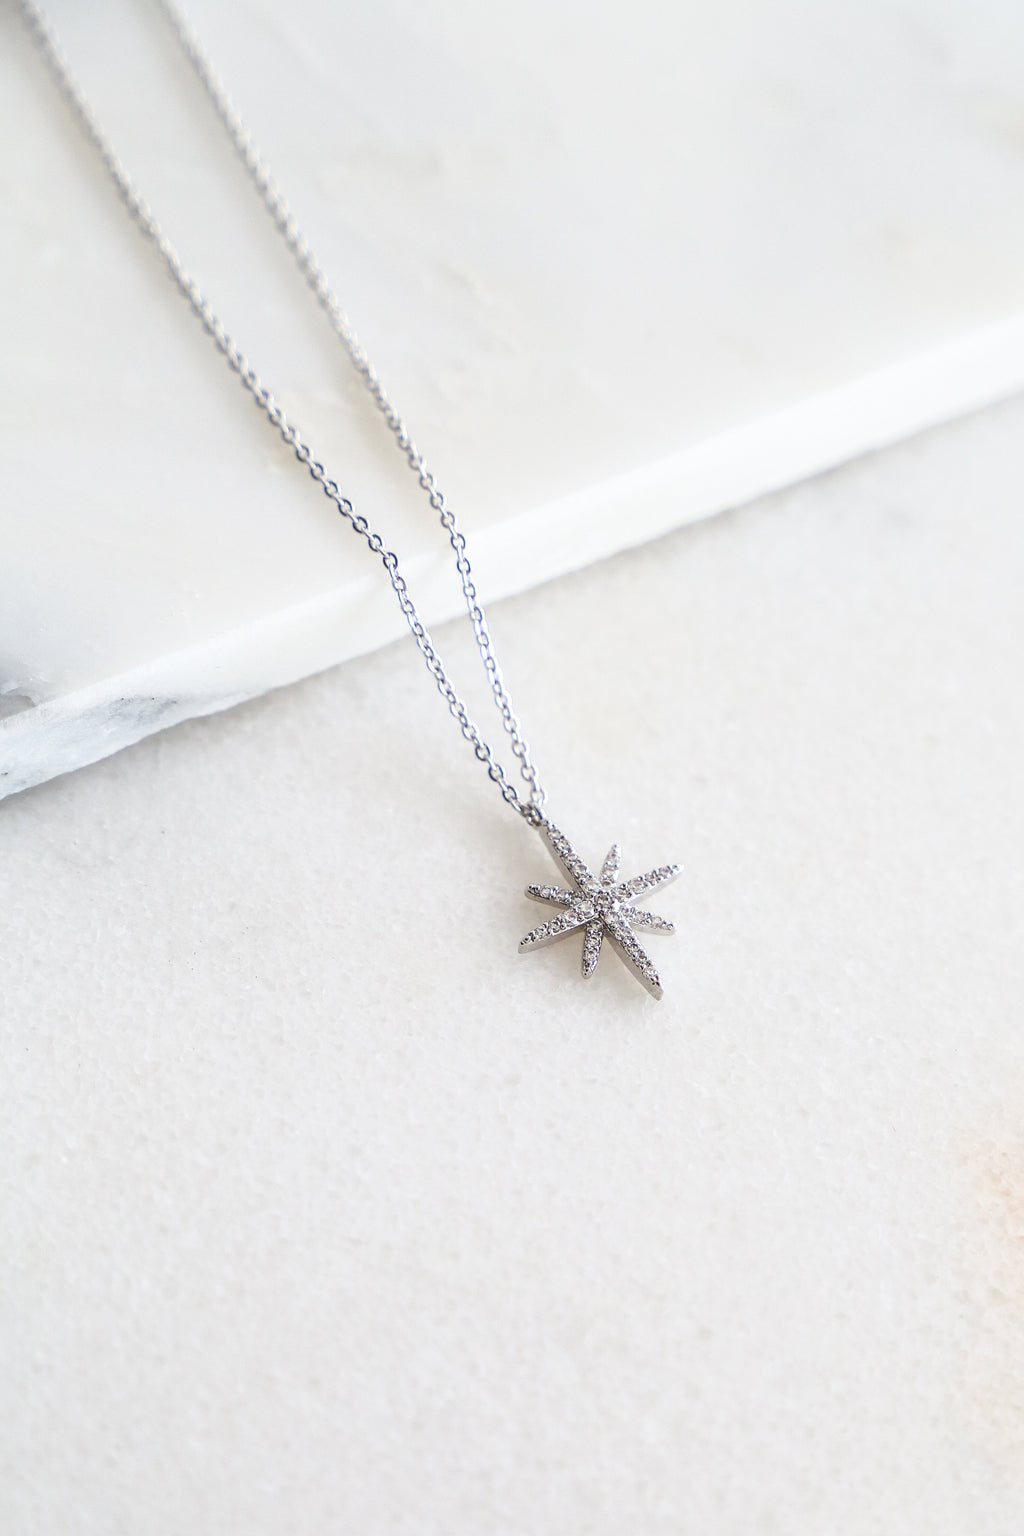 North Star Necklace - Boutique Minimaliste